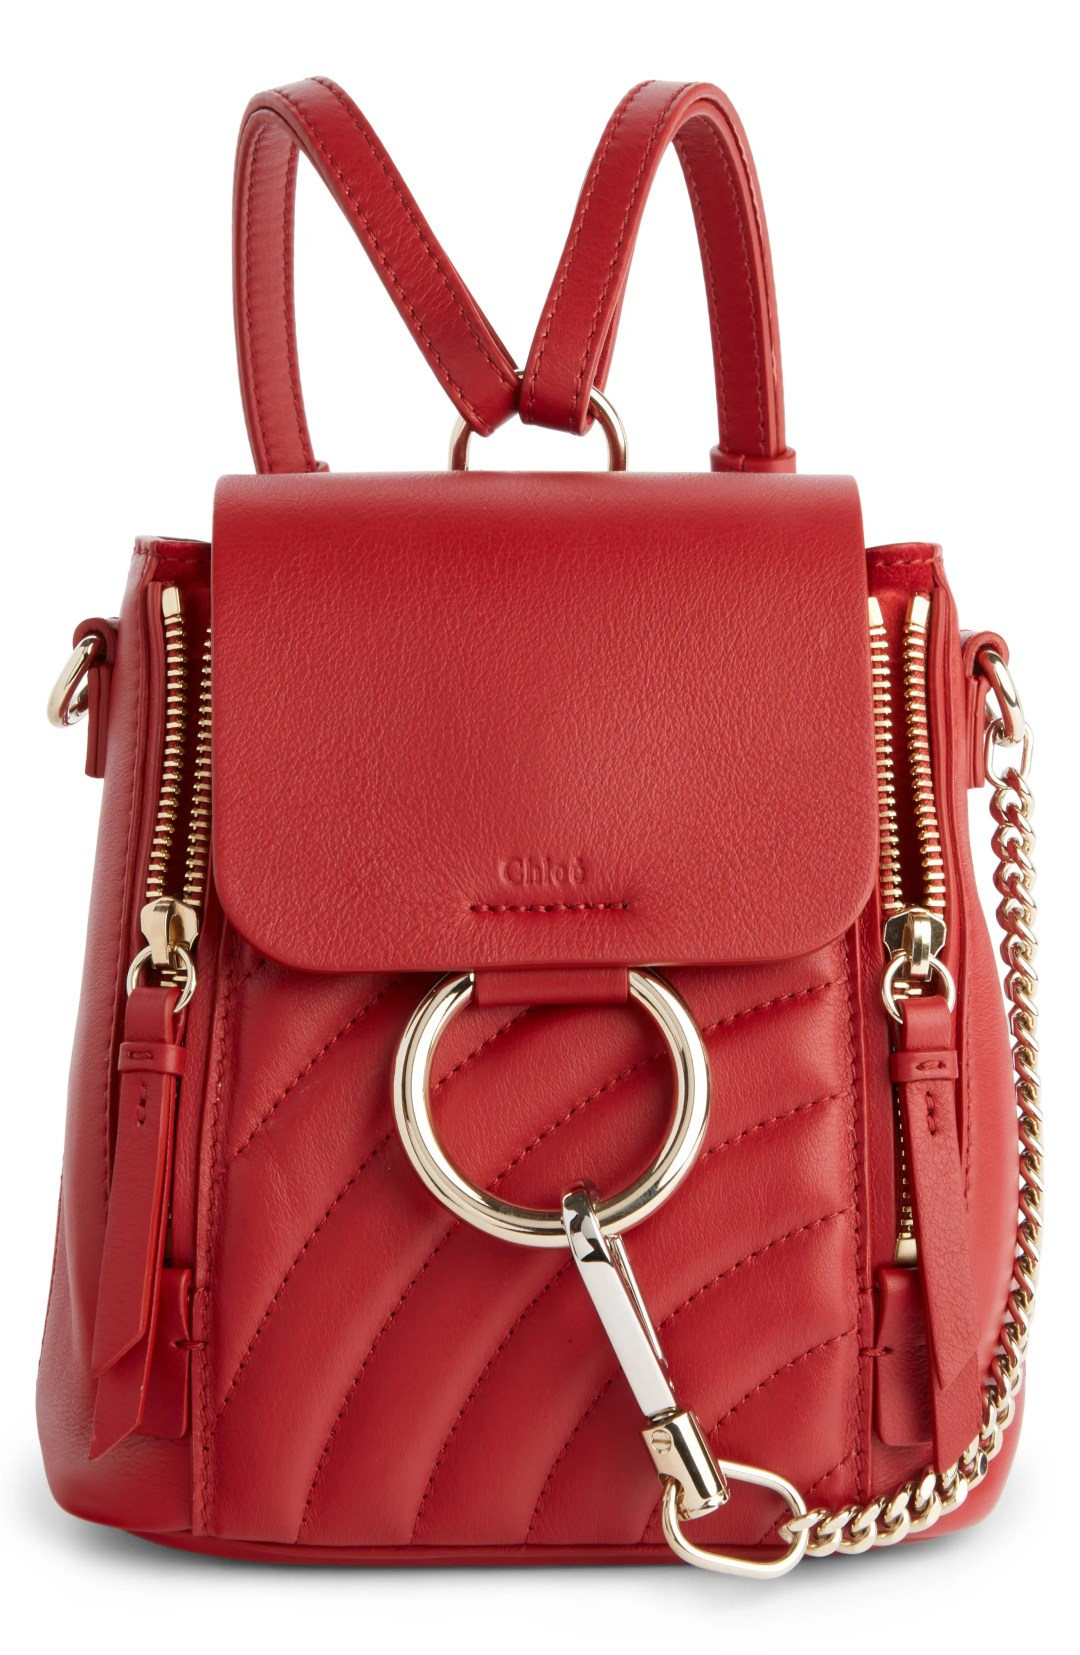 349465edd4670b Chloé Faye Quilted Leather Backpack